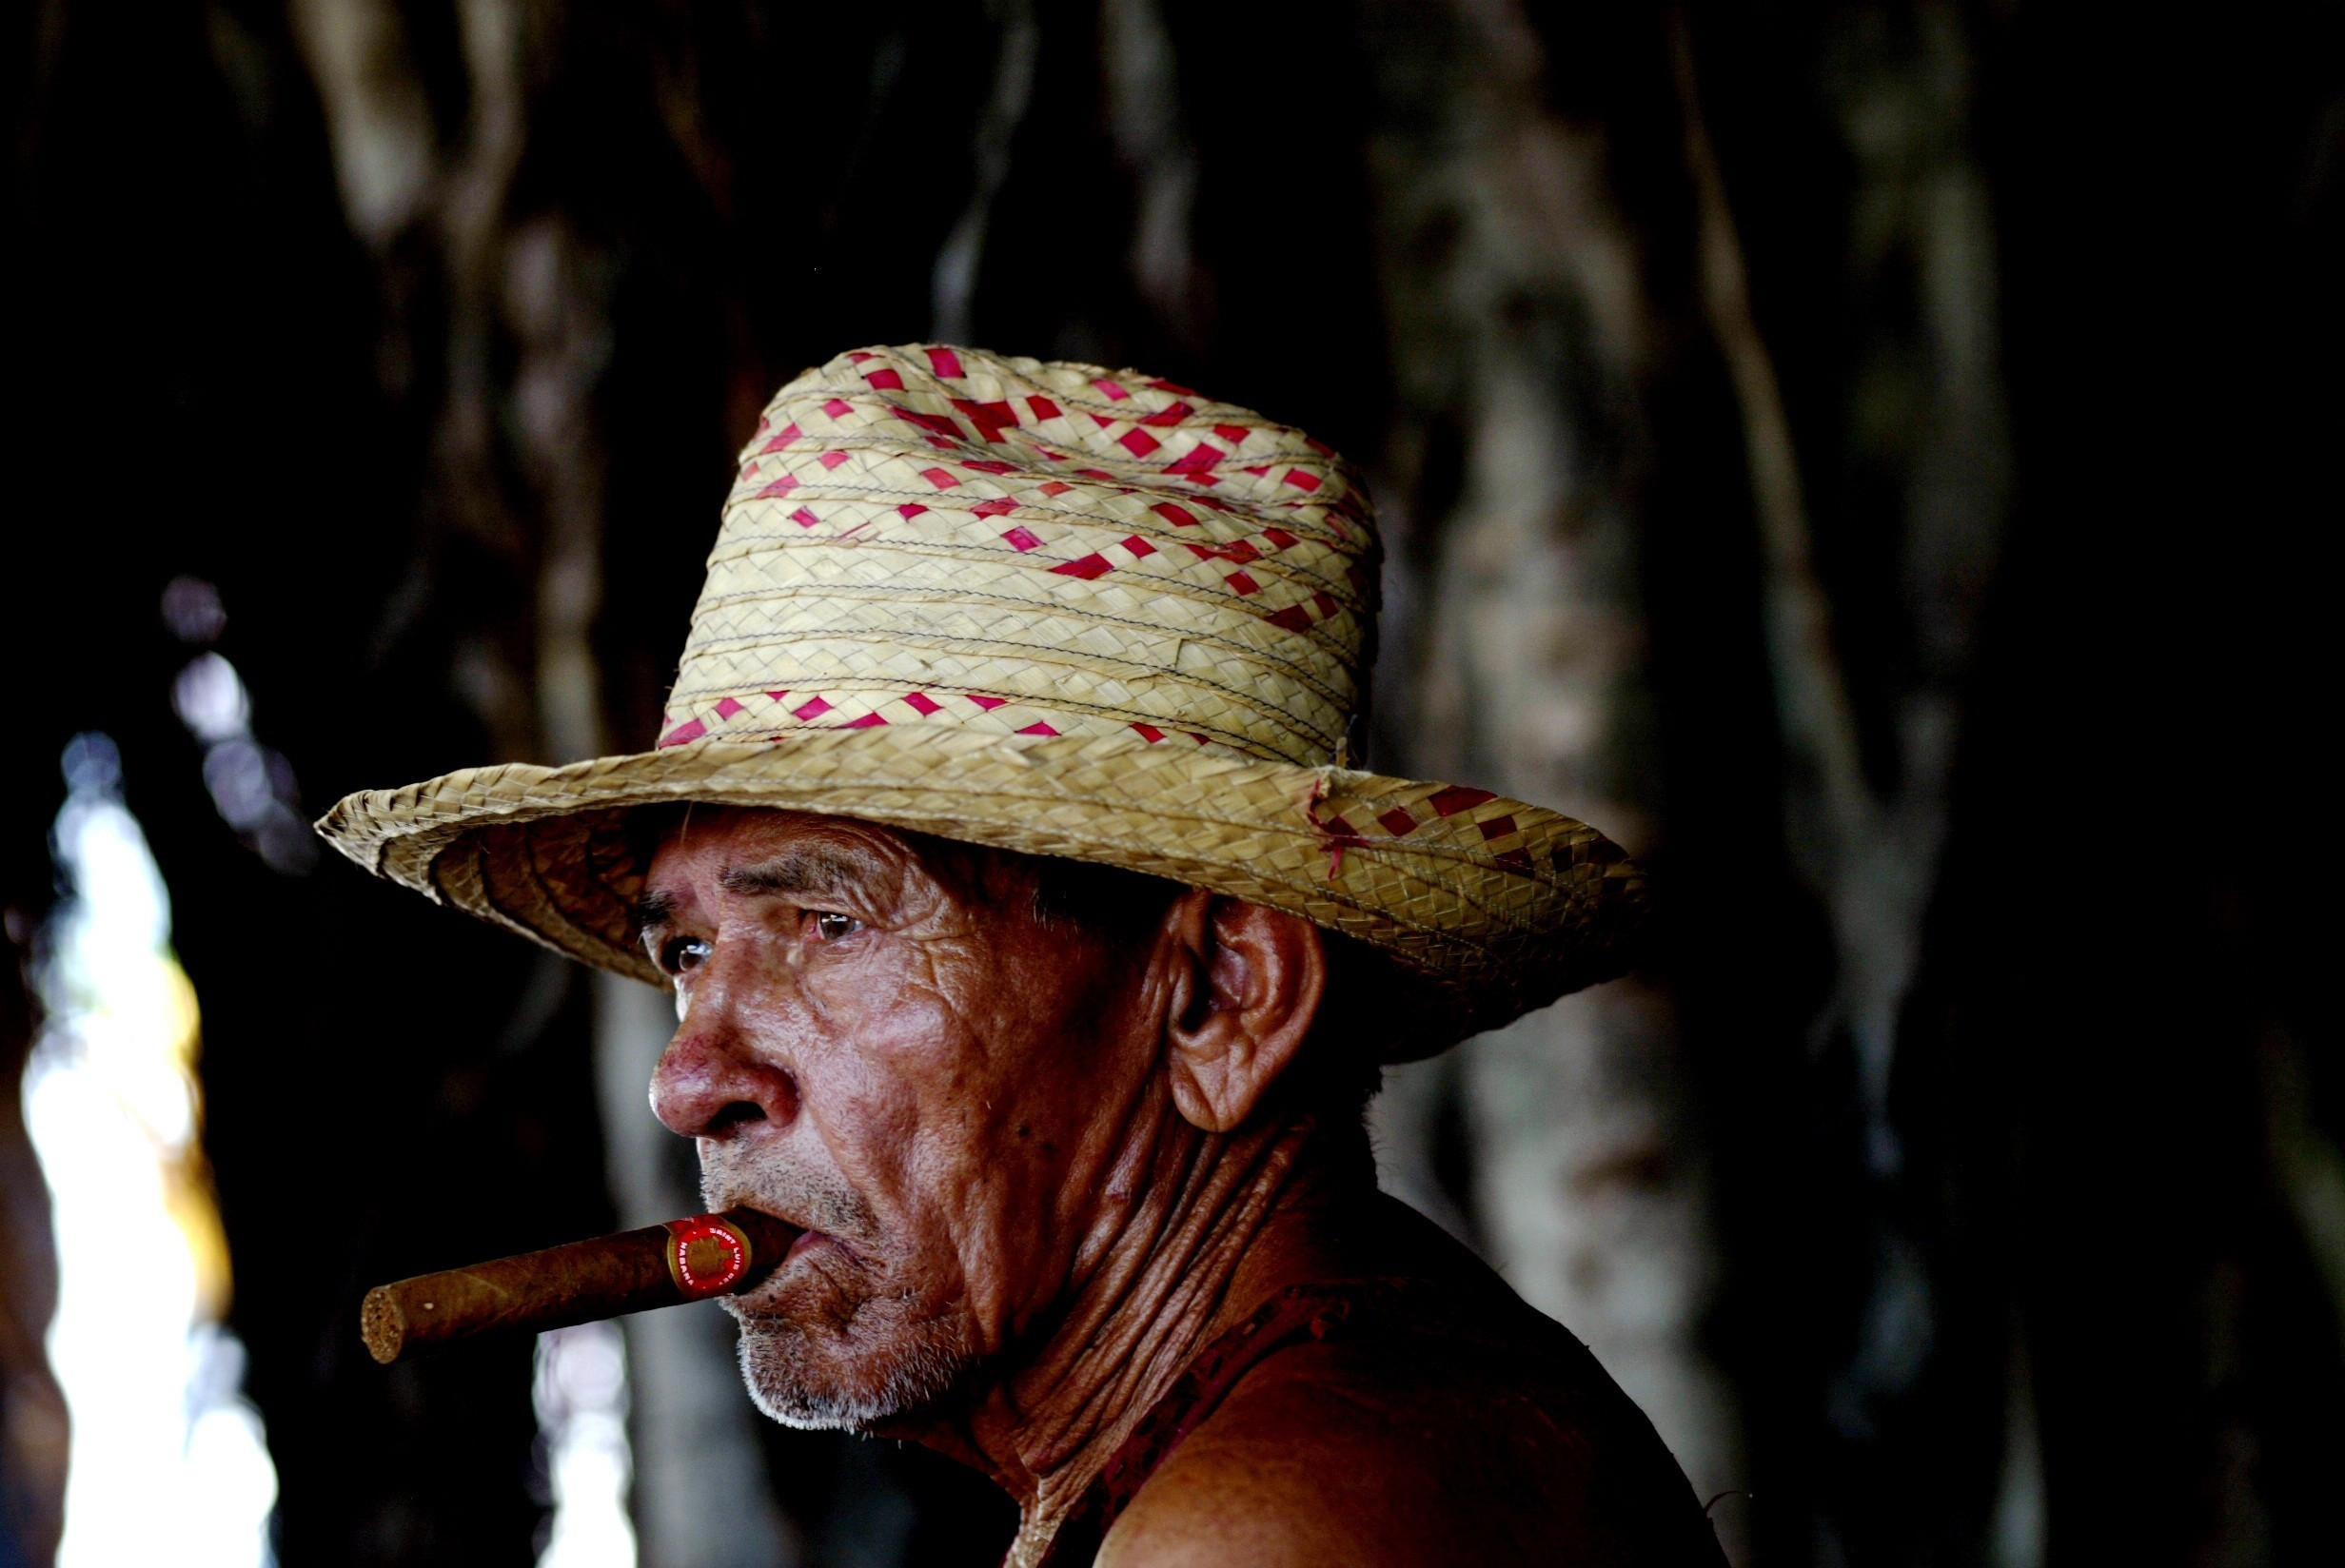 2464x1648 Indians, portrait, old man, hat, cigar, photography, hd, wallpaper